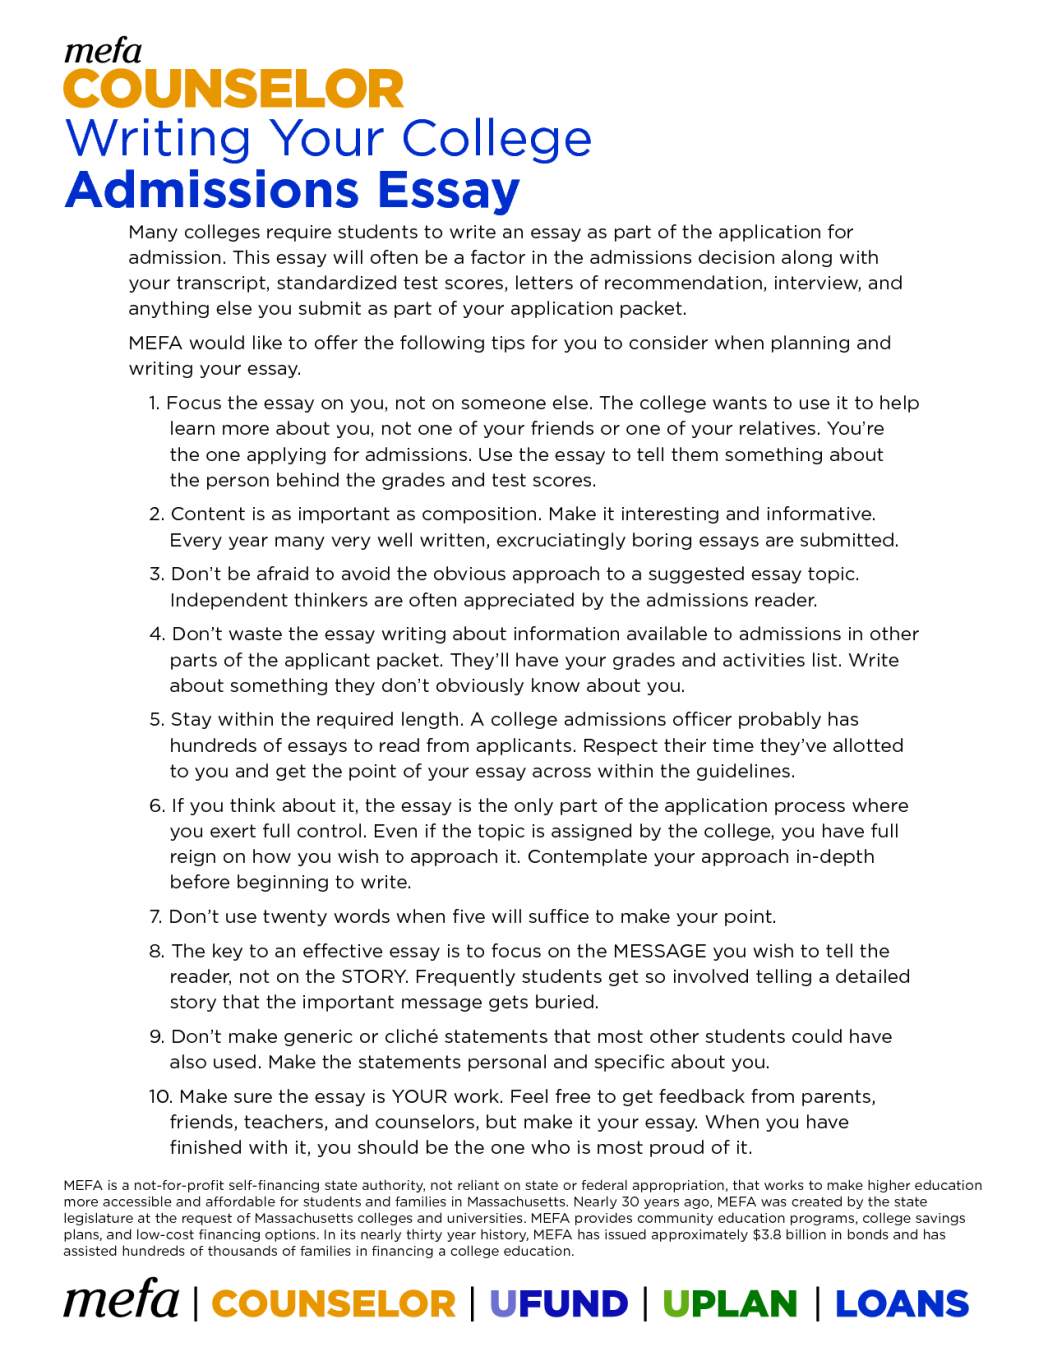 003 Essay Example How Long Should College Essays Writing Help High School Many Paragraphs Application Wuaom Pages Words What About Formatted In Mla Format Fascinating Be A For The Common App 2019 Full